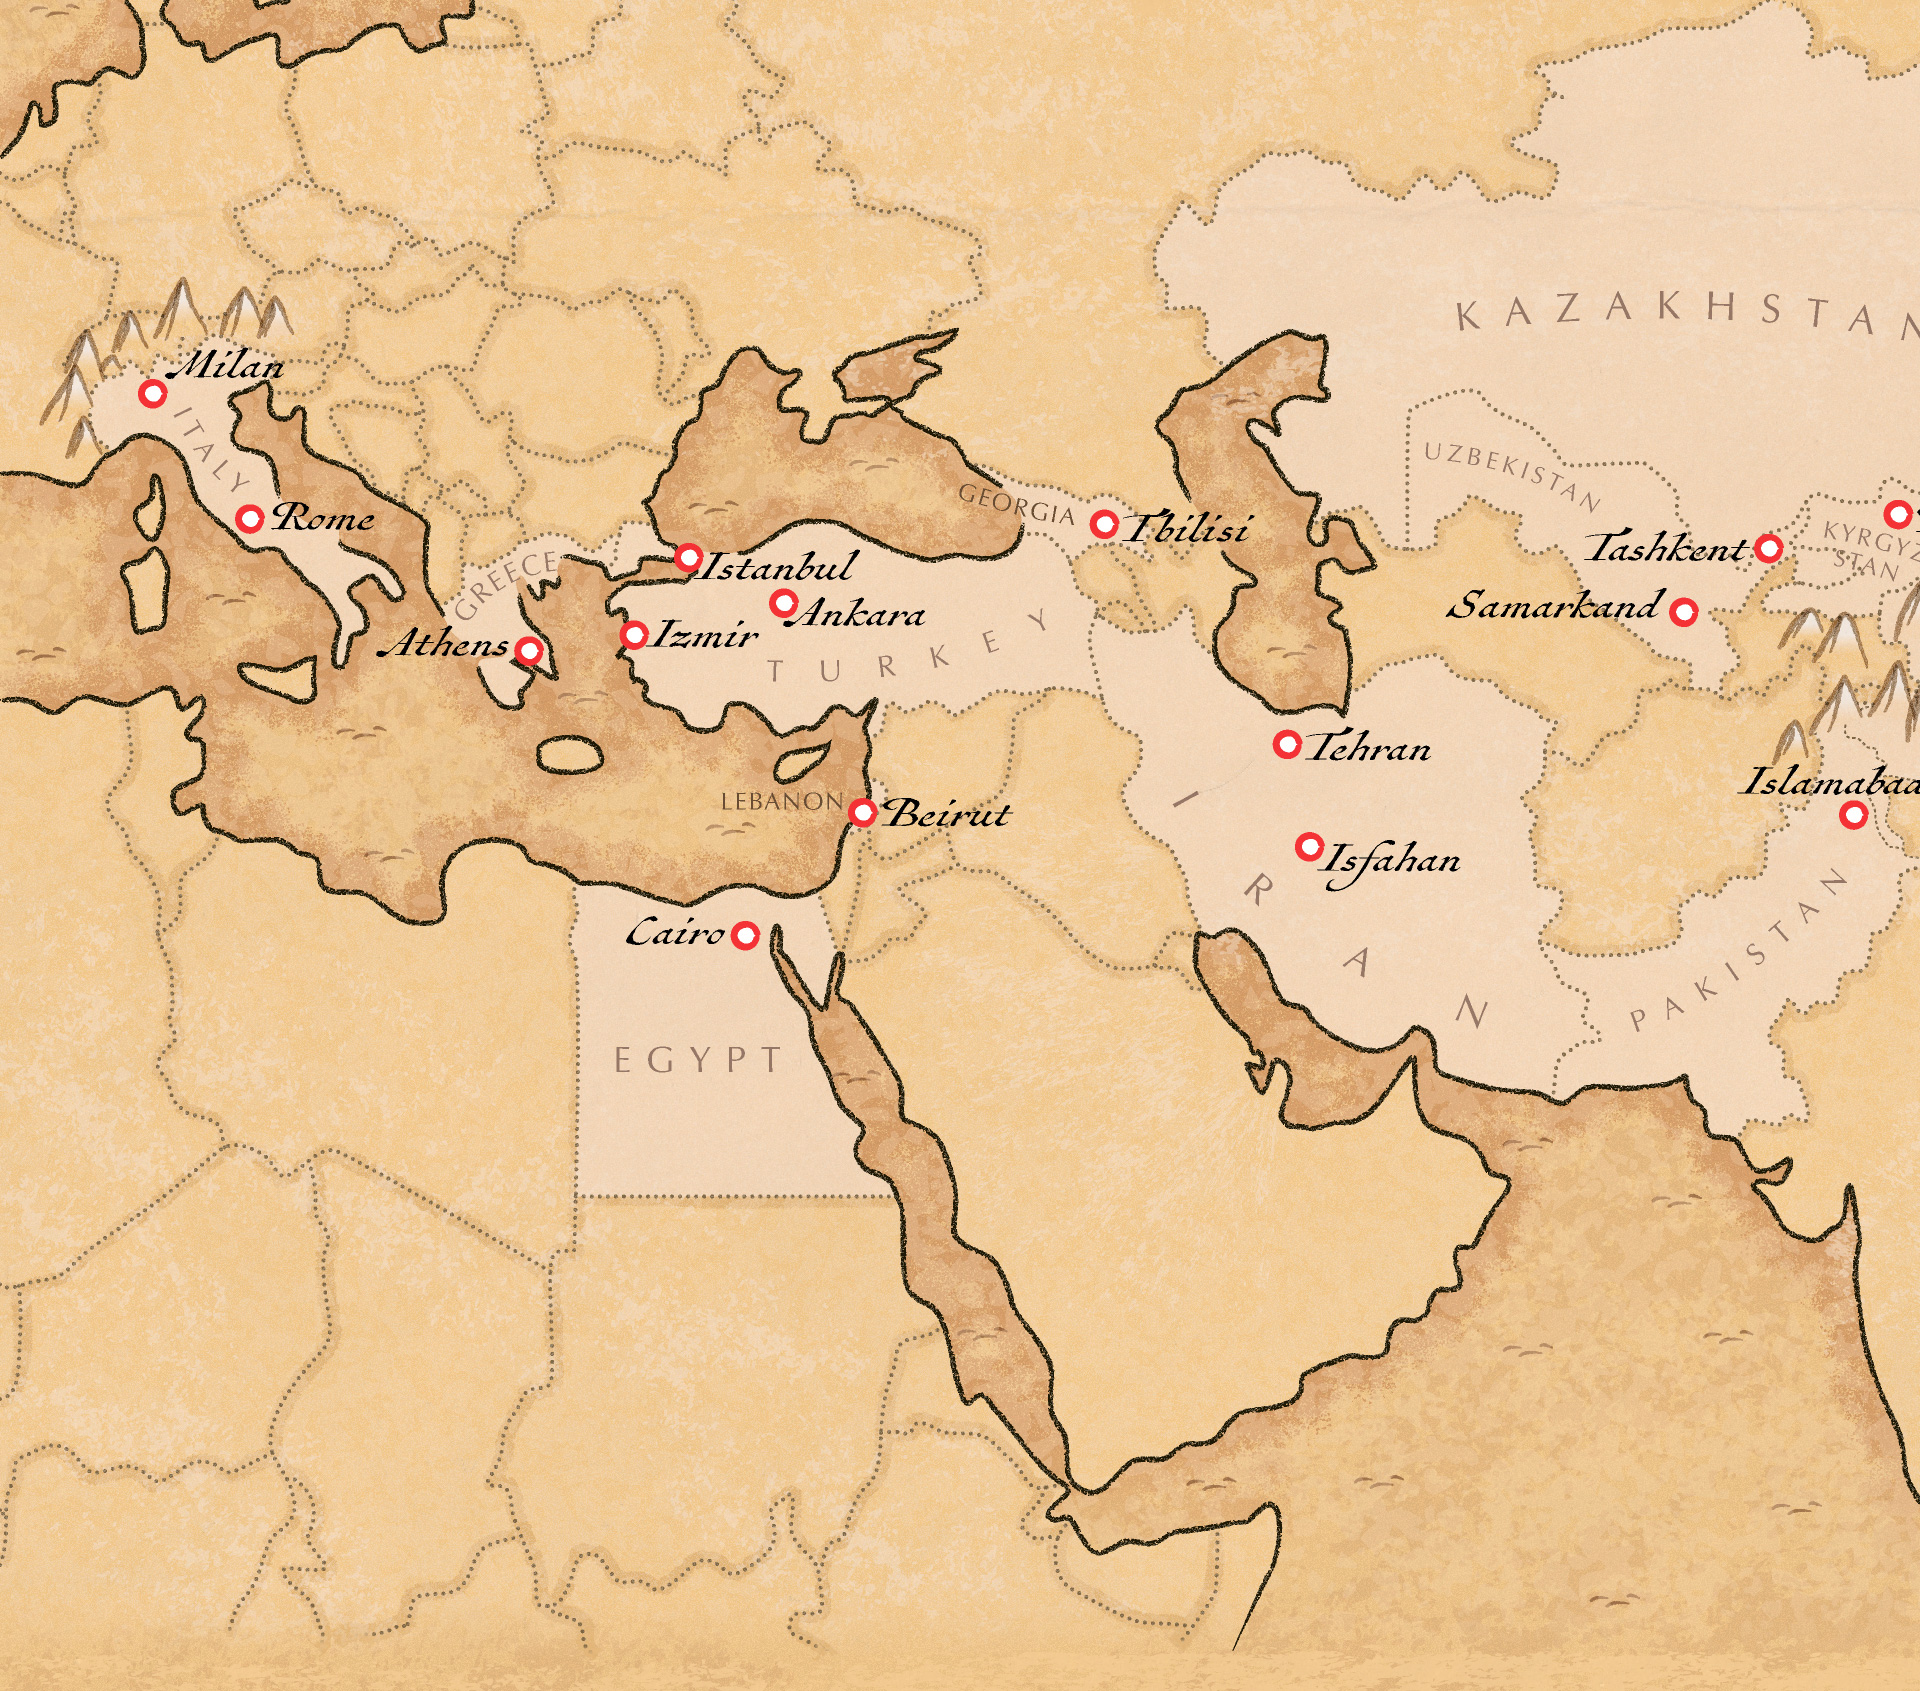 Europe and Middle East part of the Silk Road